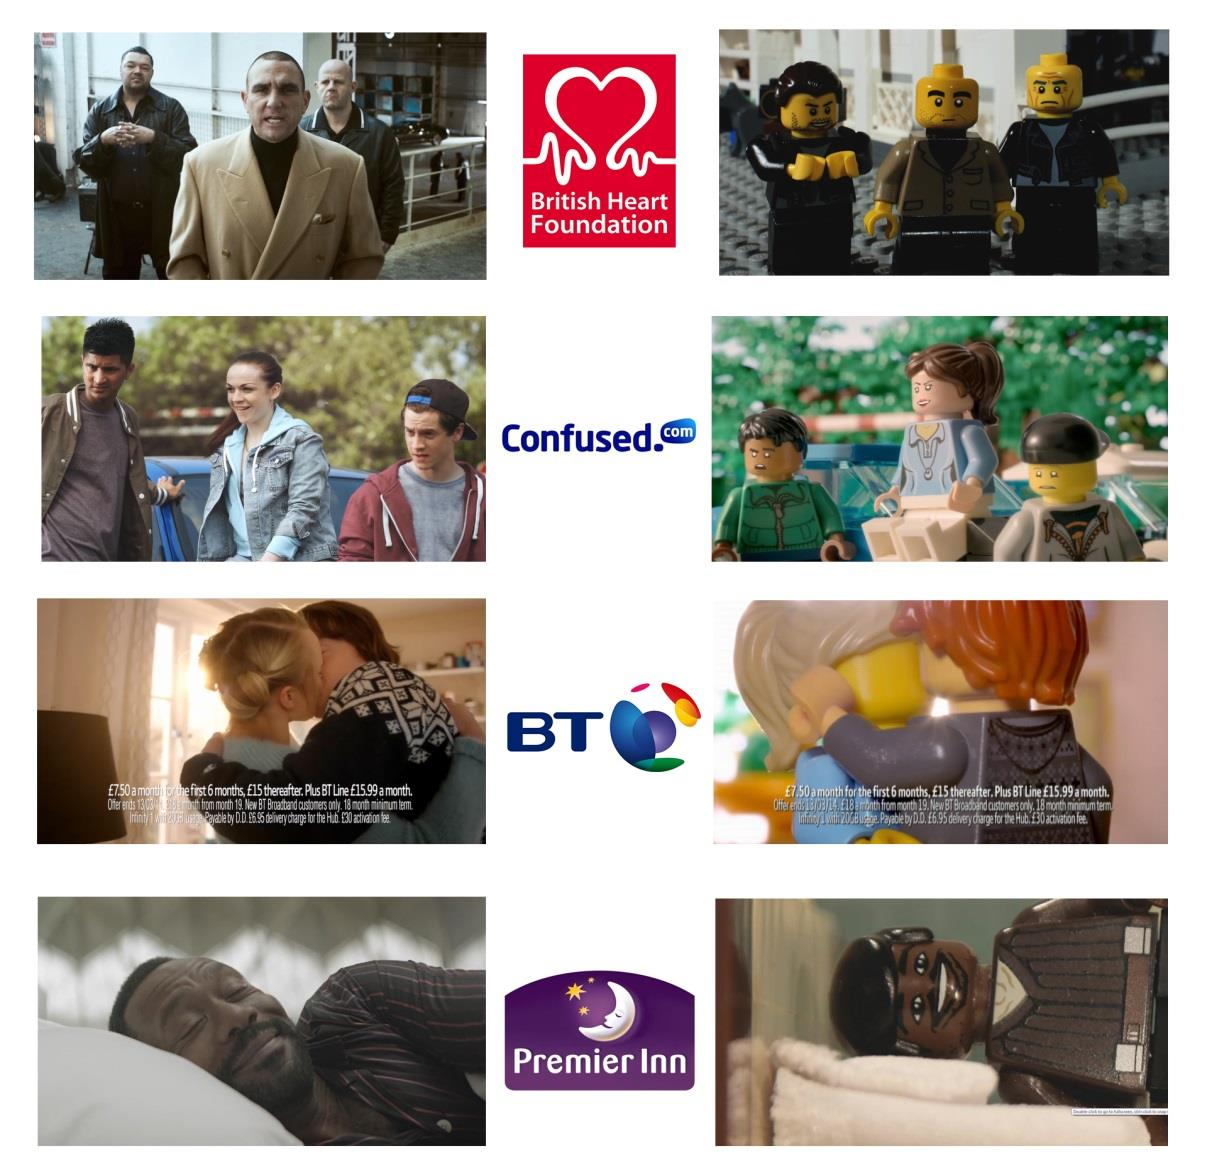 broadcast, type LEGO Movie ad break into YouTube or click HERE). Four familiar and modern UK television ads * for the British Heart Foundation, Confused.